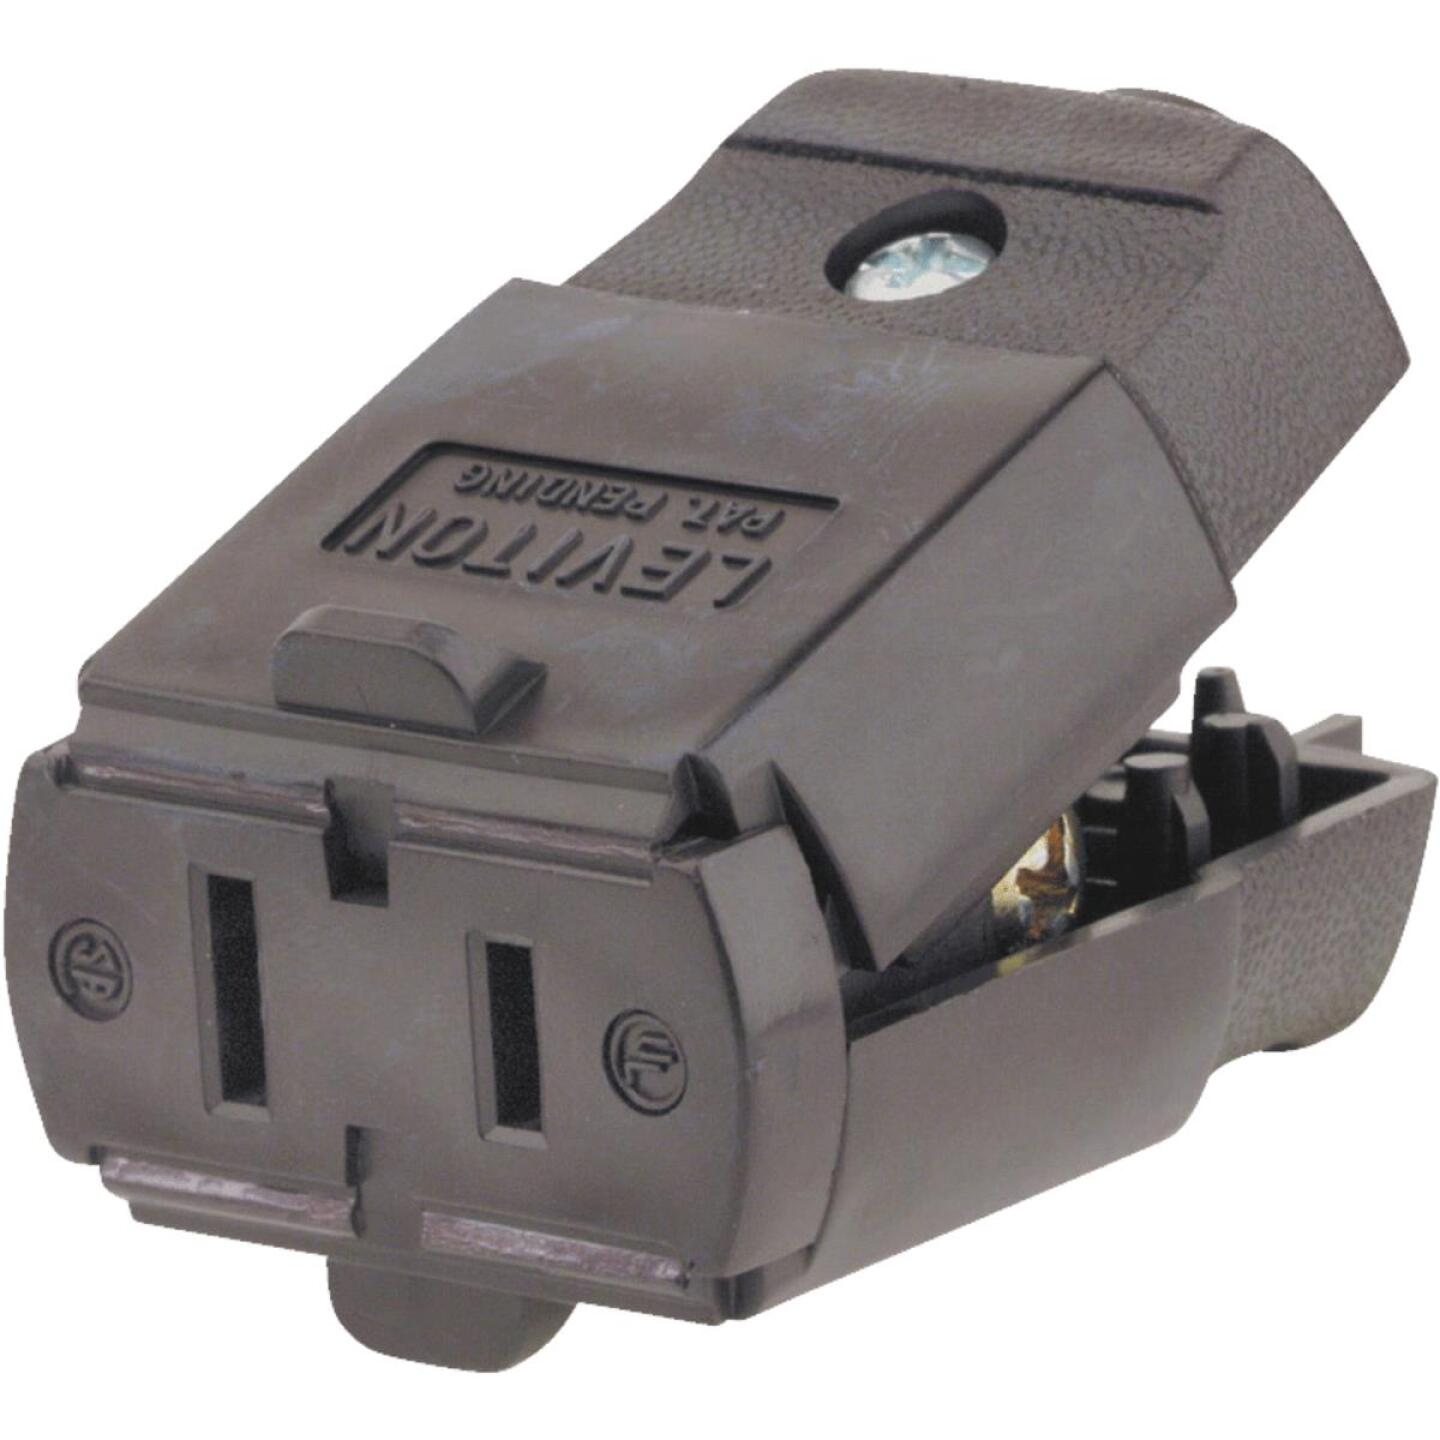 Leviton 15A 125V 2-Wire 2-Pole Hinged Cord Connector, Brown Image 2